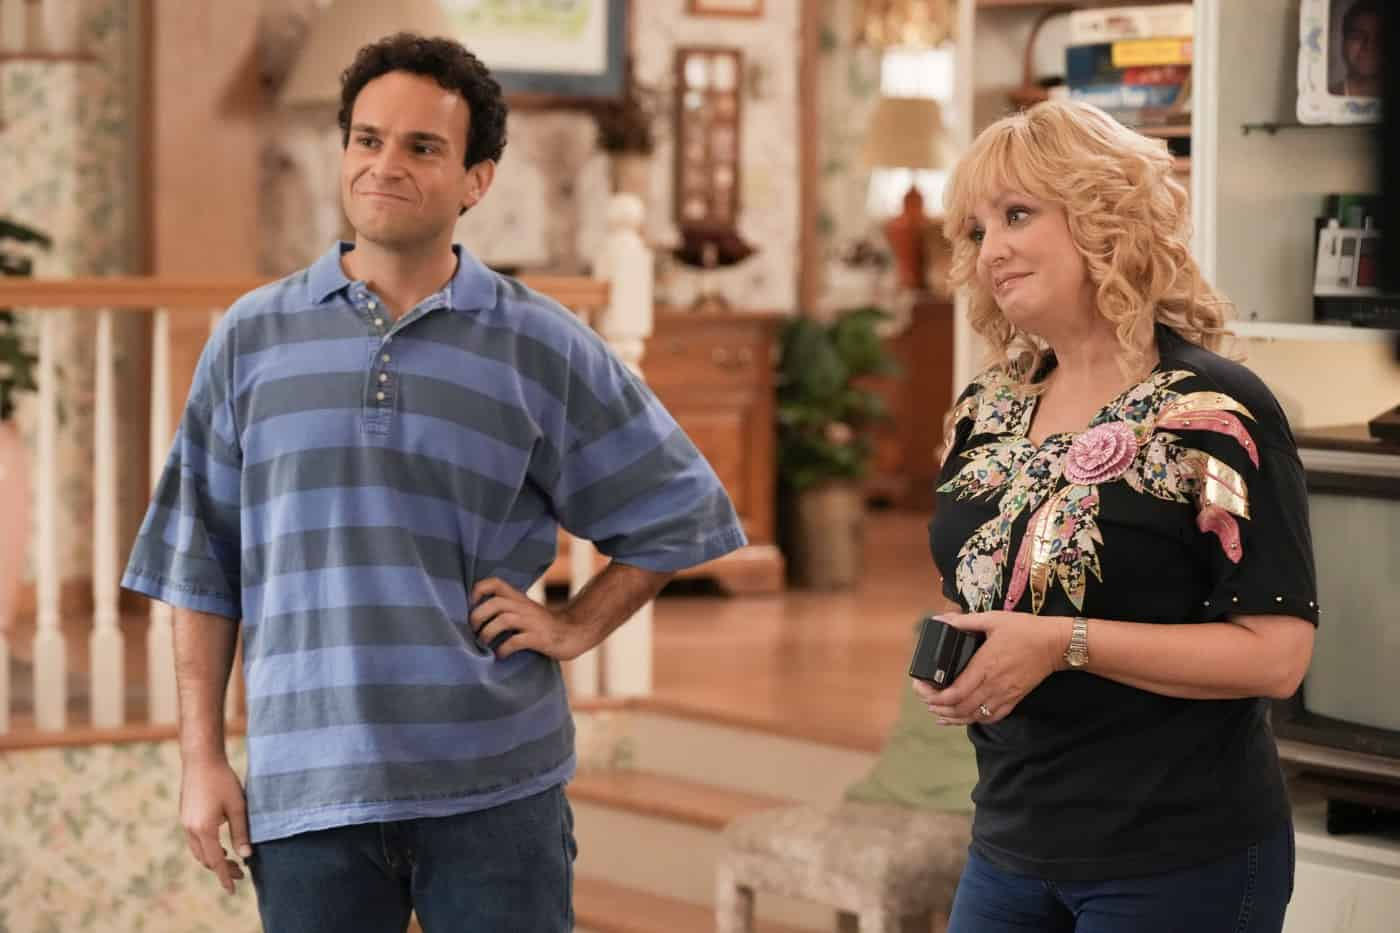 """THE GOLDBERGS Season 9 Episode 2 - """"Horse Play"""" – Adam is ready to leave the struggles of his high school years behind him but is distraught to discover he's been waitlisted at NYU while his girlfriend Brea has been accepted, along with his mom Beverly – who surprises everyone by admitting she applied to the same school. Adam courts the NYU dean of admissions, hoping she will change her mind on his deferral. Meanwhile, Erica, Geoff, Barry and Joanne create their own plan to convince Geoff's dad, Lou, that Erica had nothing to do with a past incident involving his prized porcelain horses on a new episode of """"The Goldbergs,"""" airing WEDNESDAY, SEPT. 29 (8:00-8:30 p.m. EDT), on ABC. (ABC/Scott Everett White) WENDI MCLENDON-COVEY"""